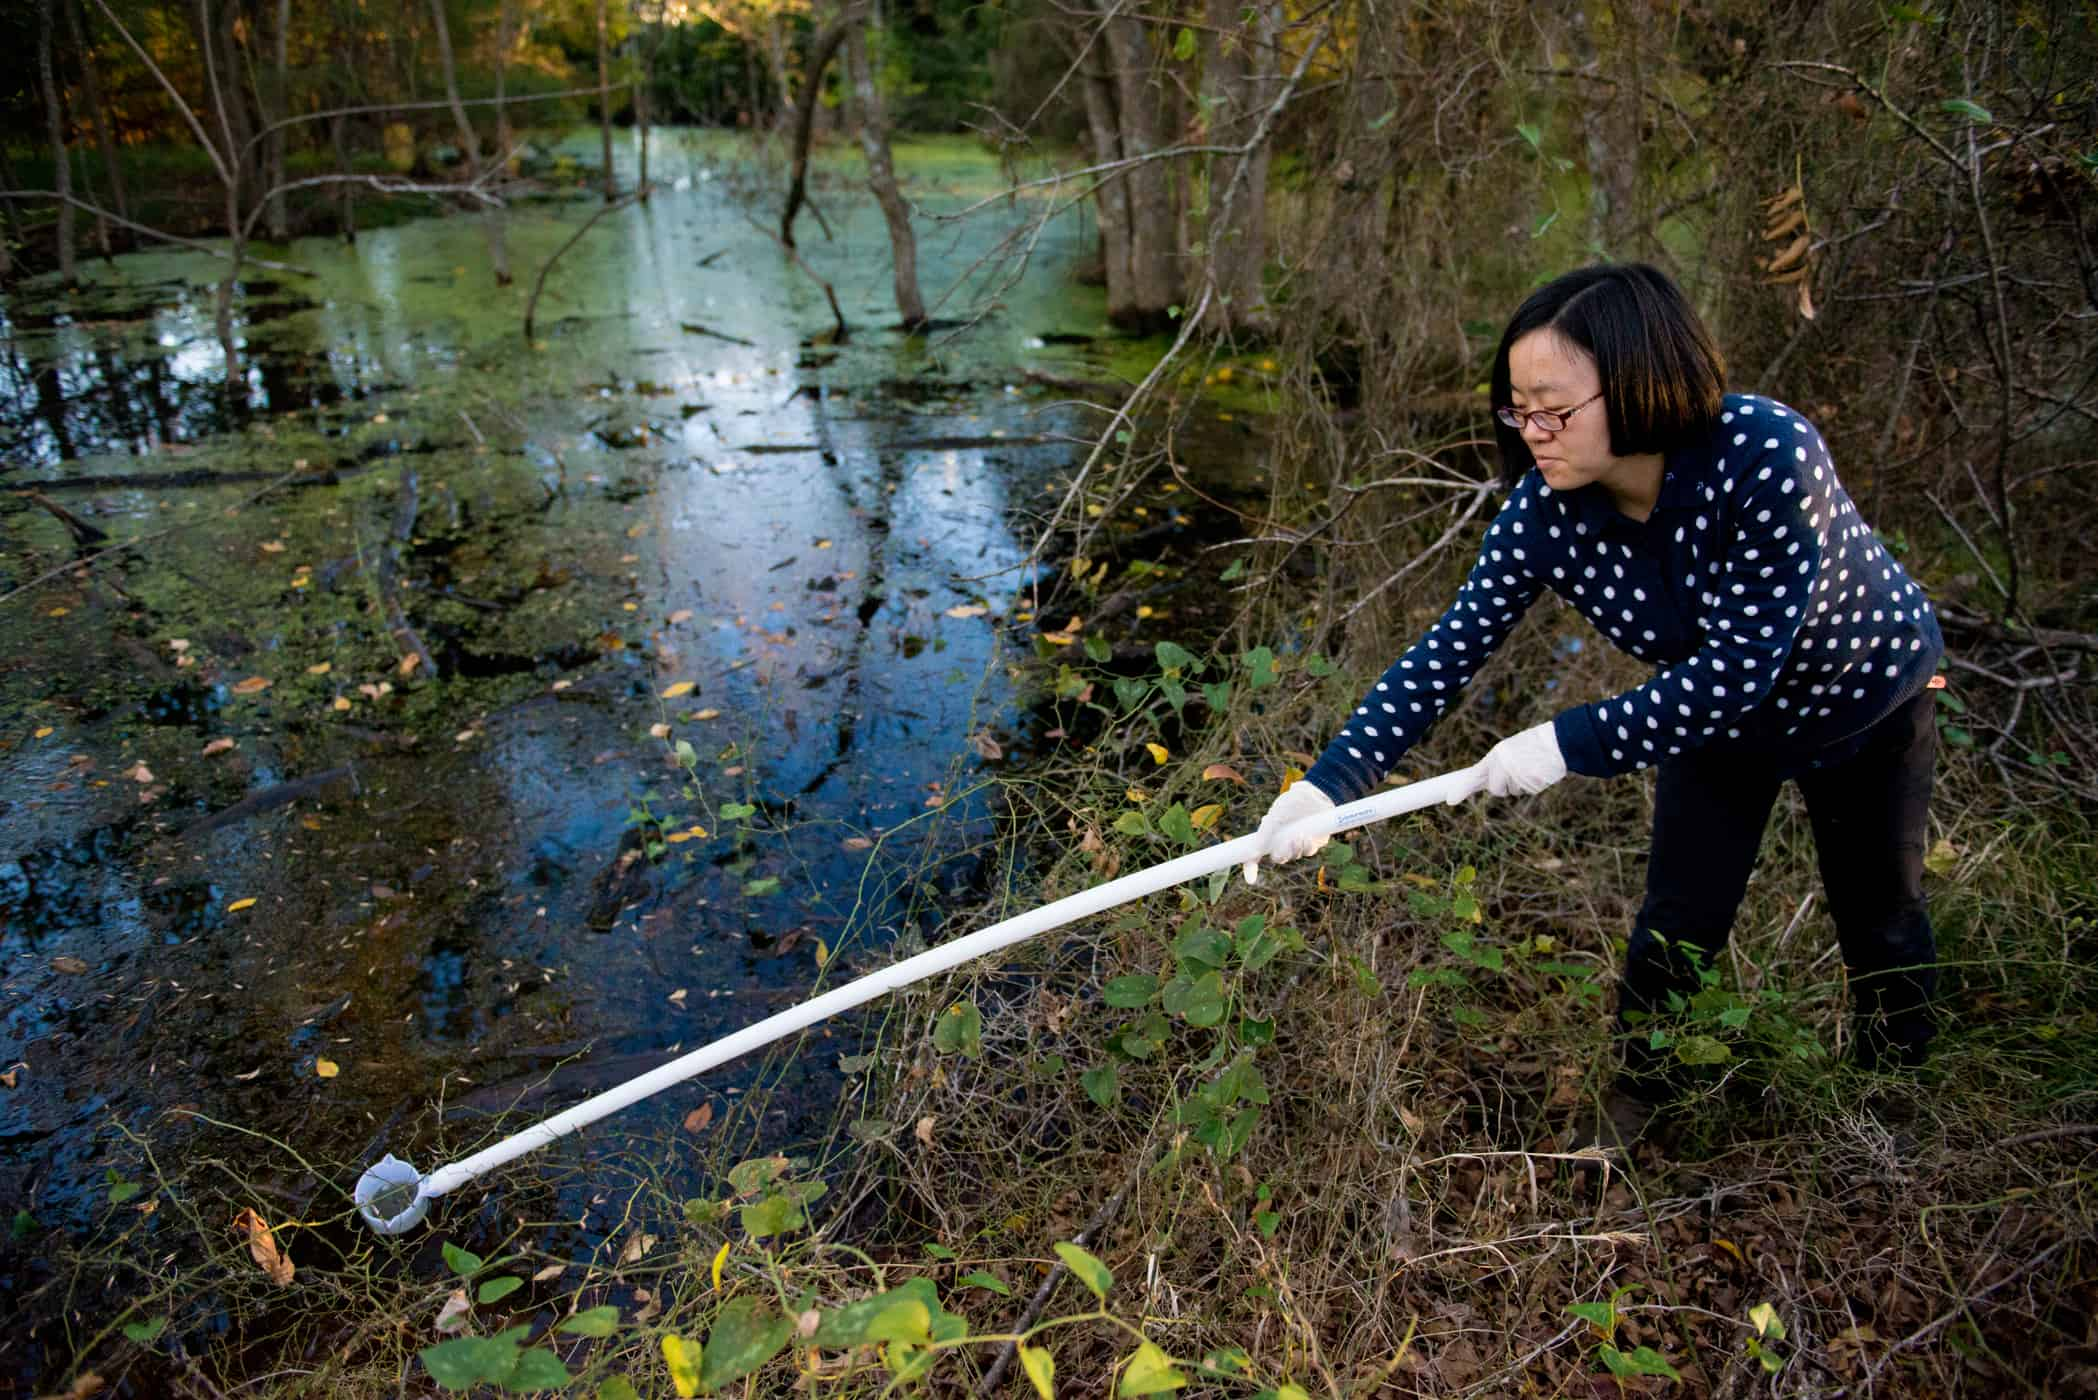 Environmental scientist taking sample of water